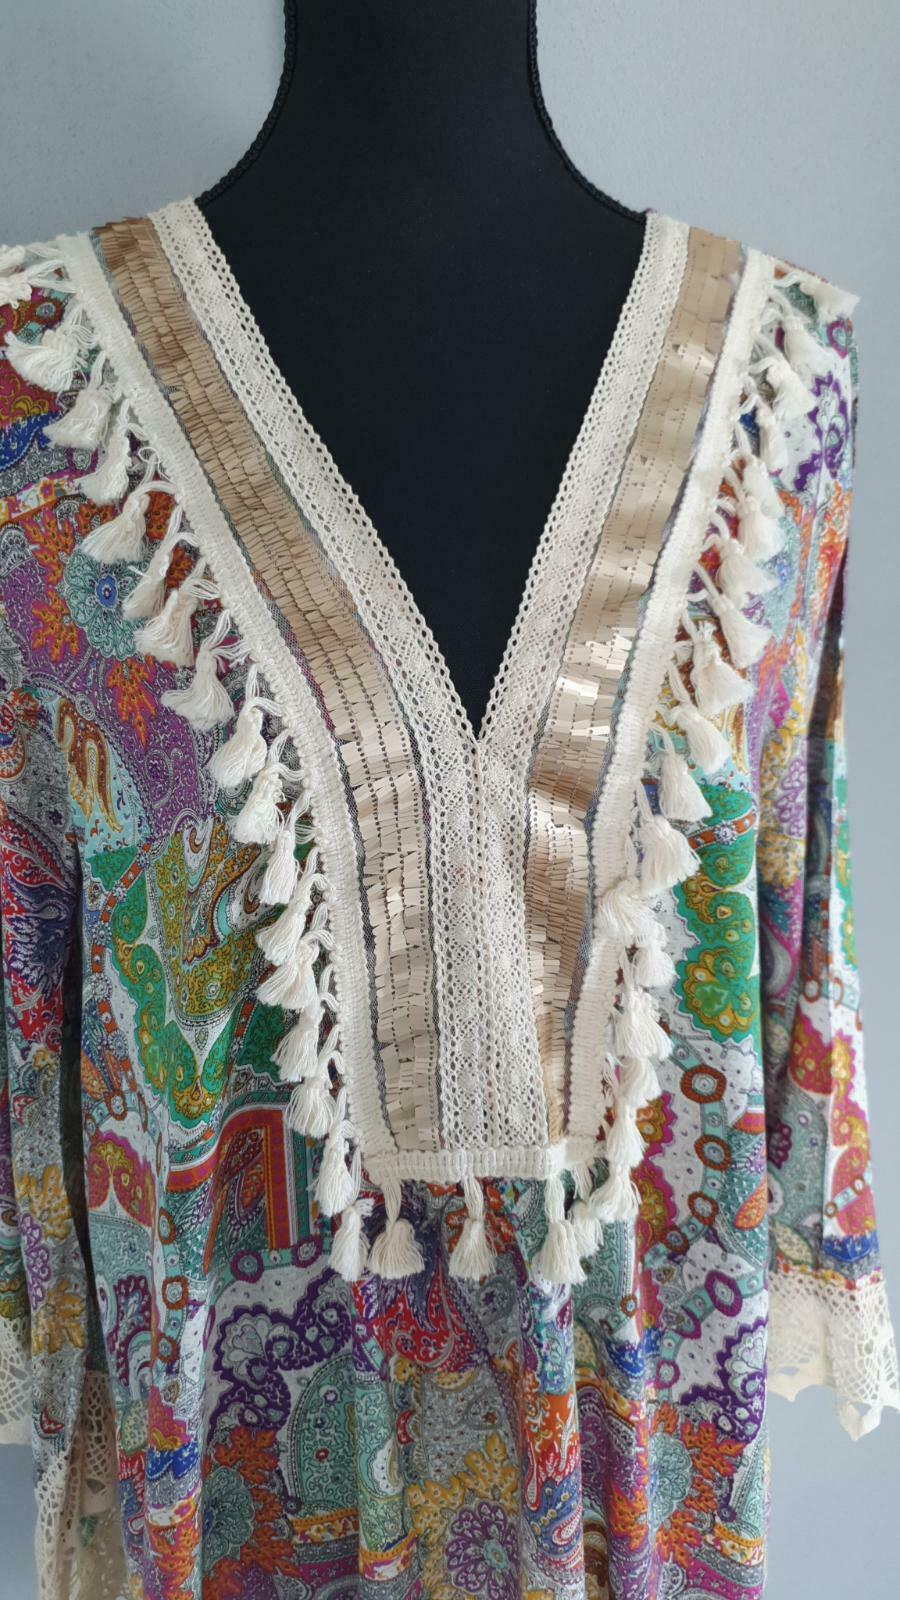 made in italy tunika kleid gr. m/l hippie ibiza style in